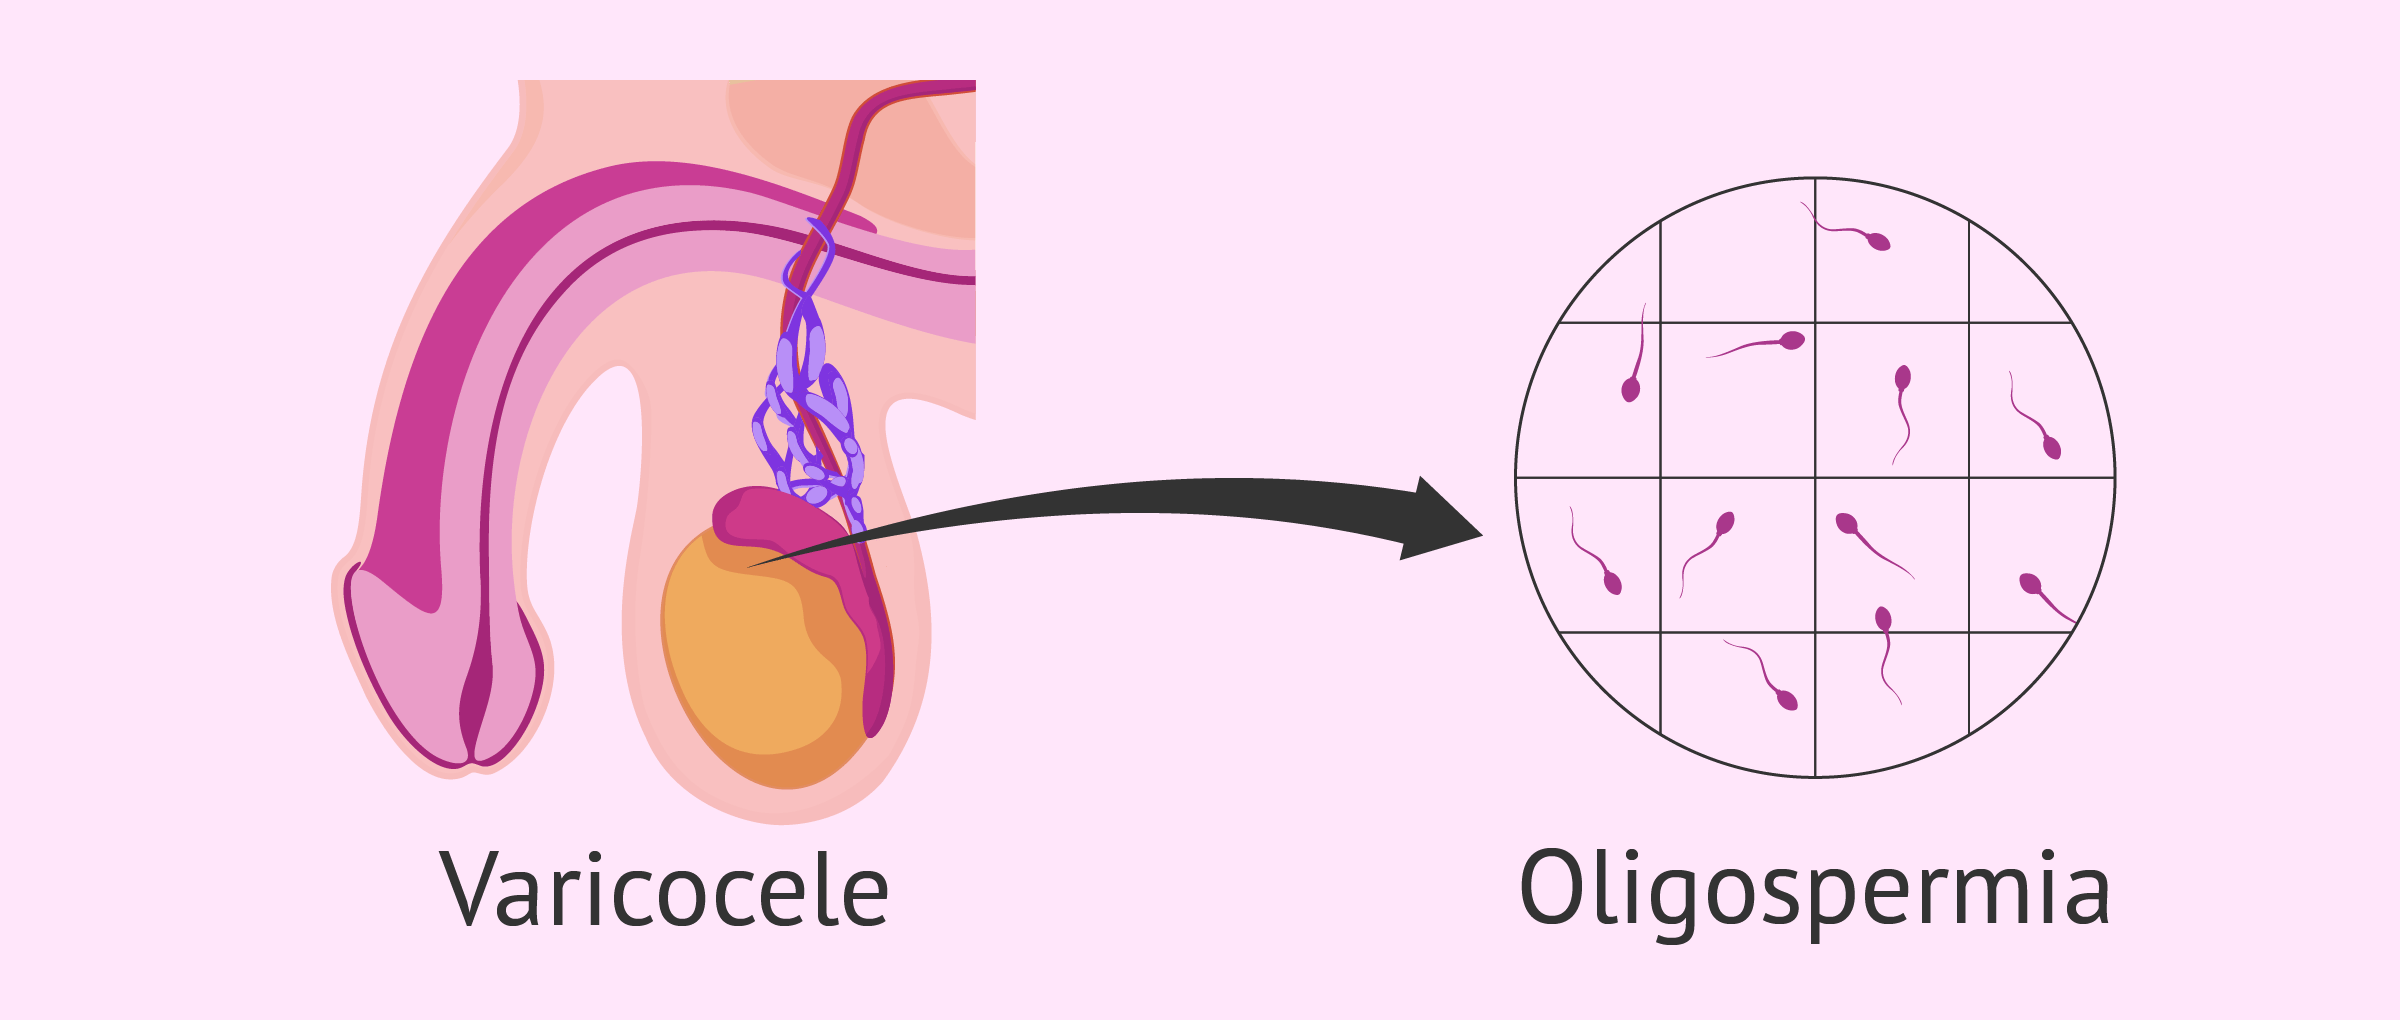 Oligospermia caused by varicocele